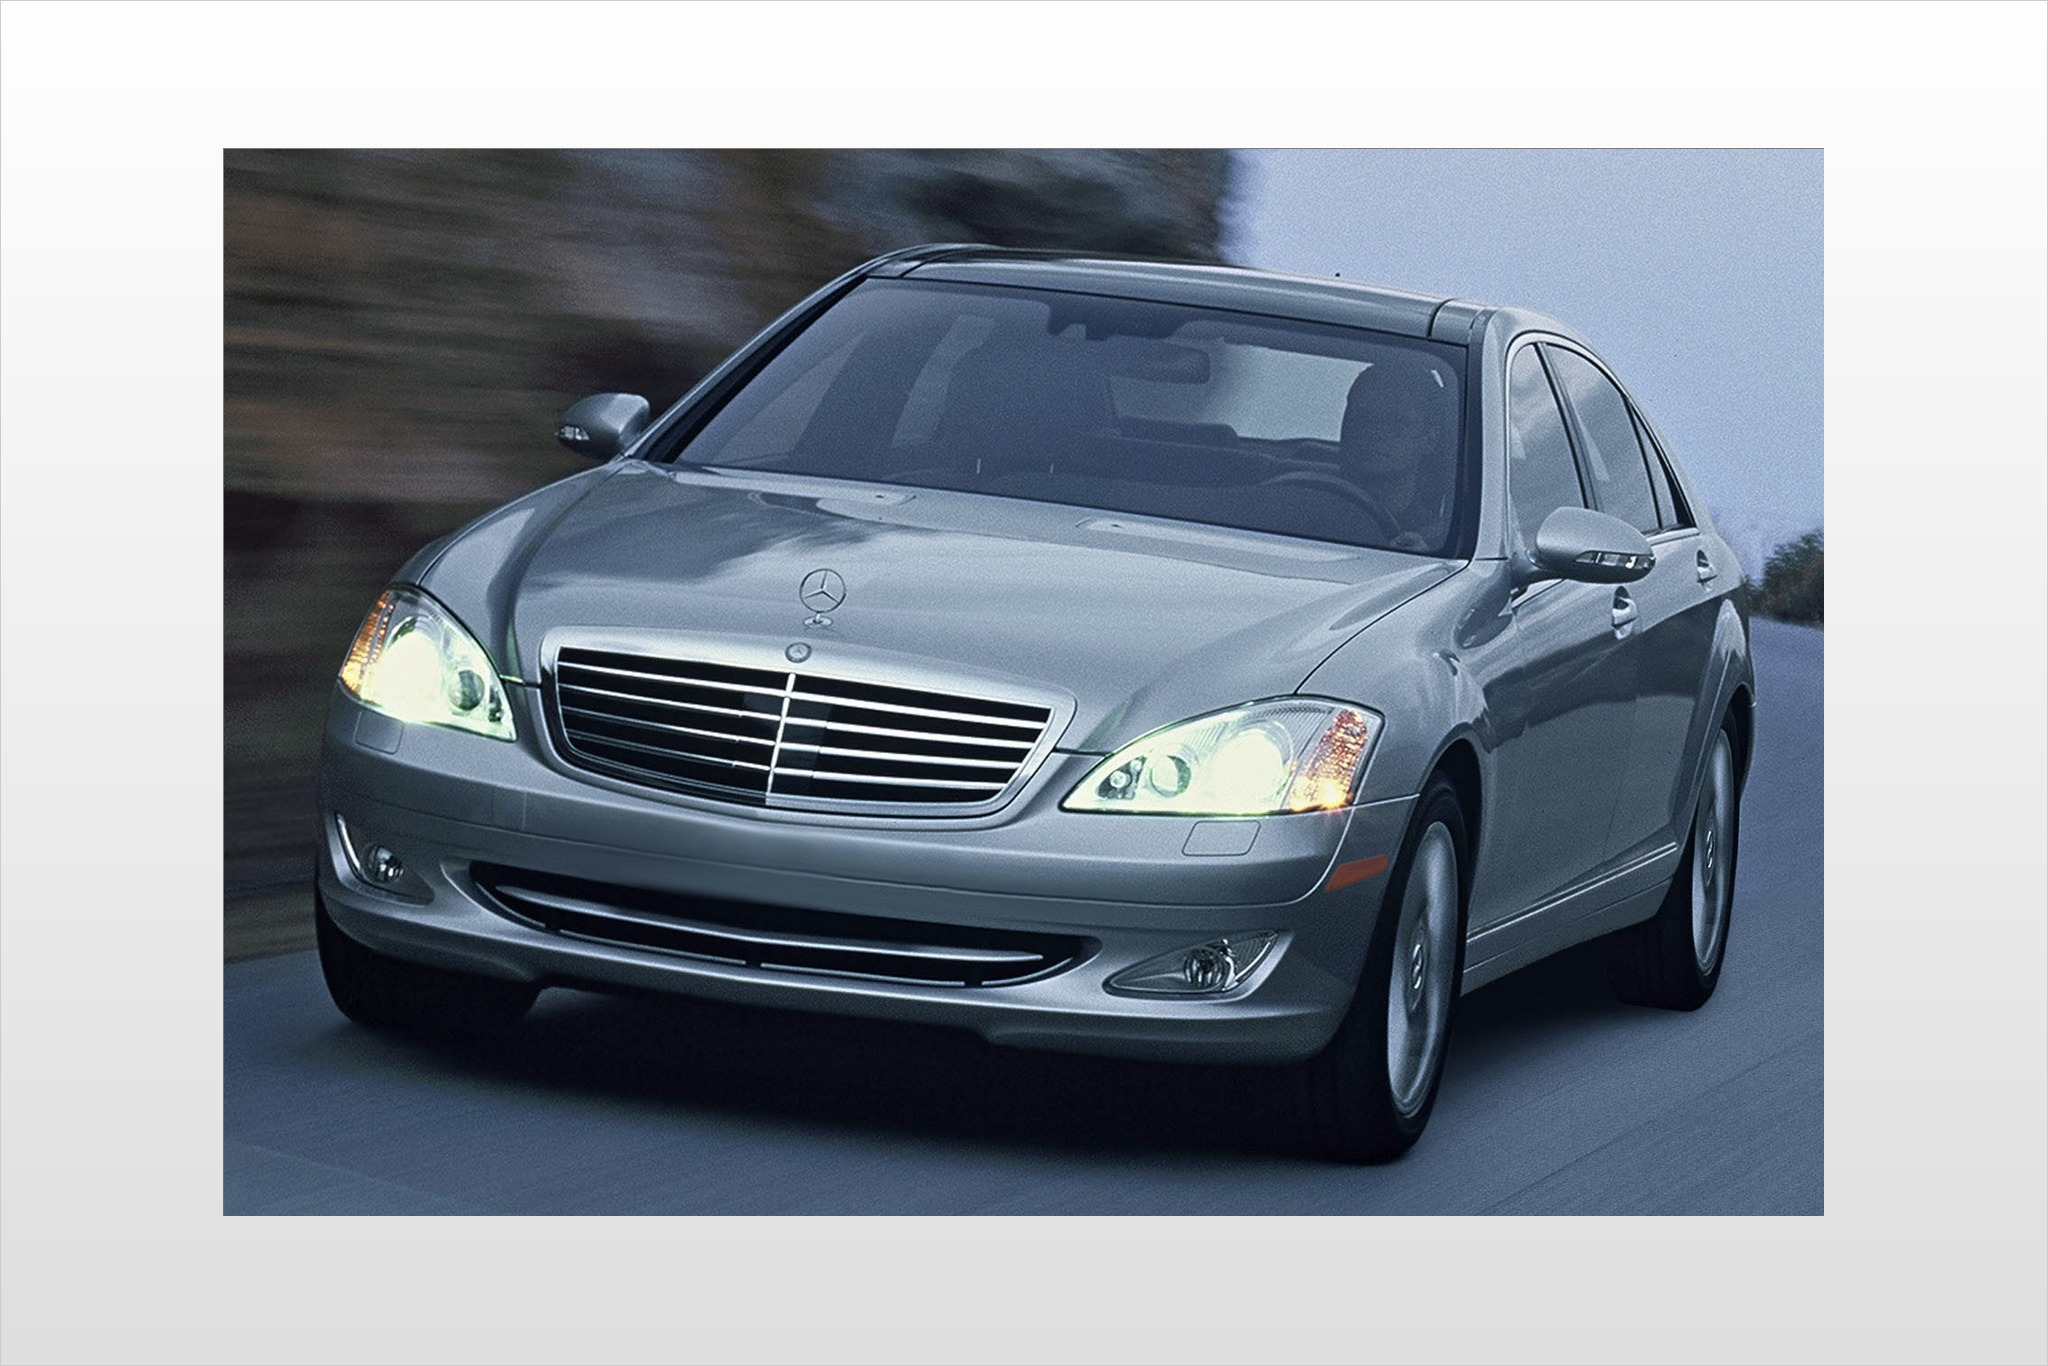 2007 mercedes benz s class image 4 for Mercedes benz oem